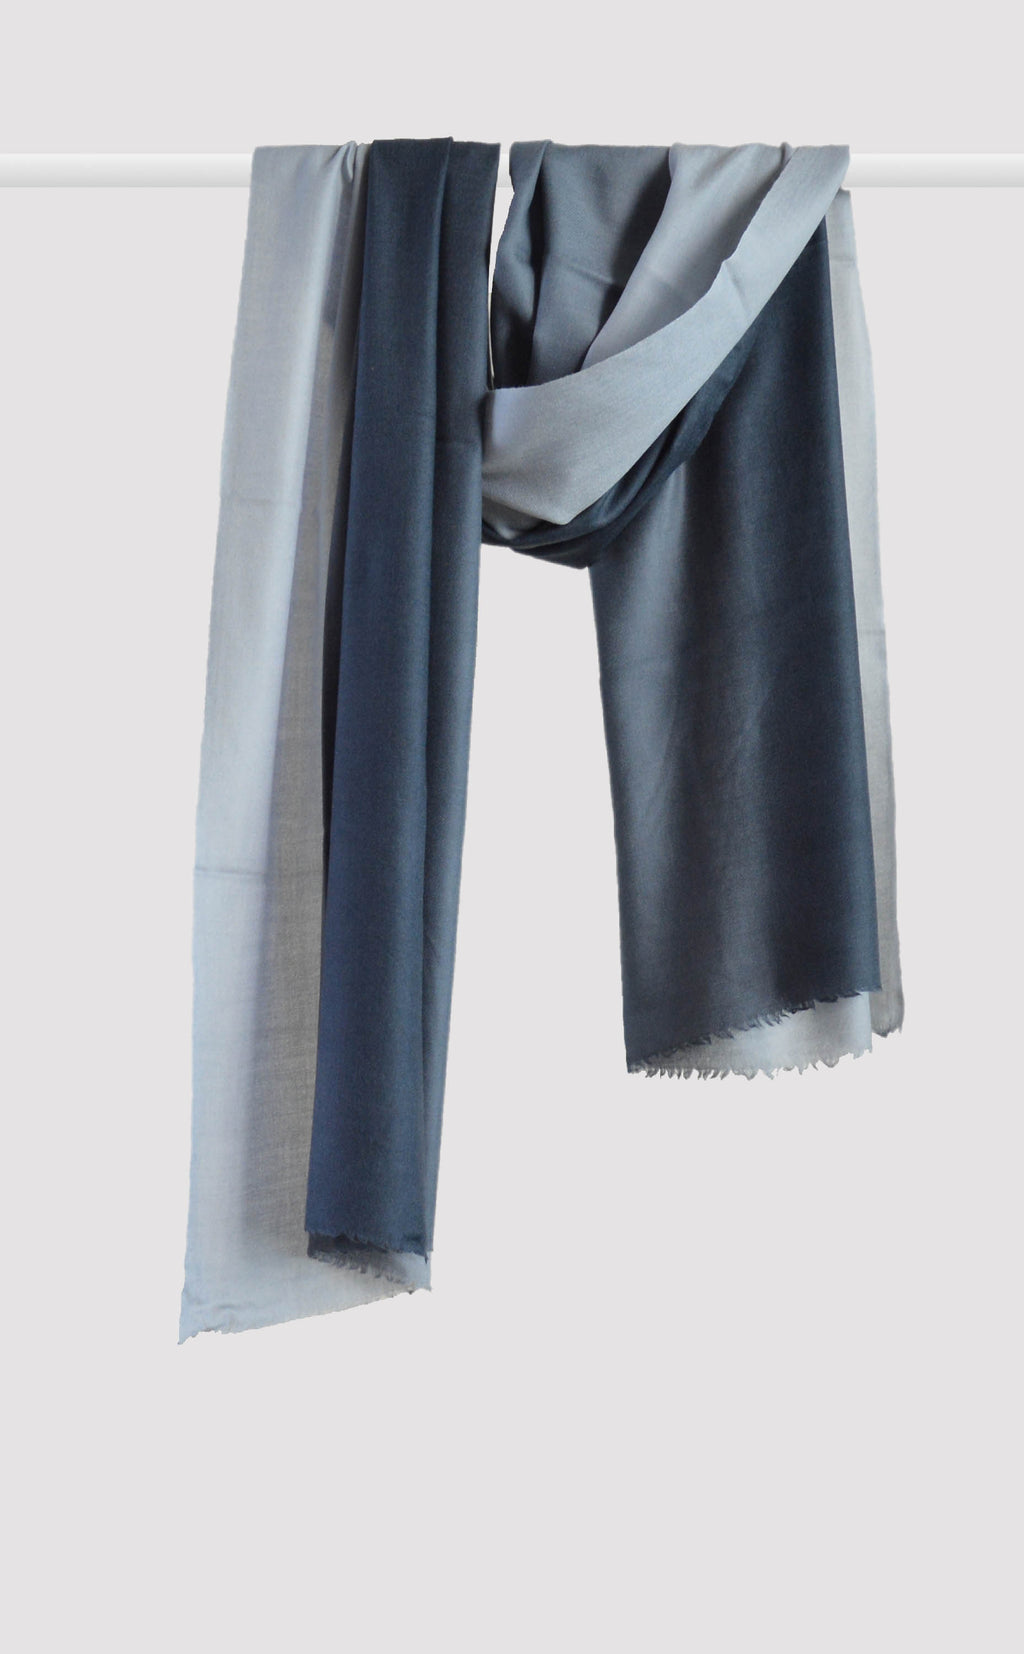 Merino Ombre - Charcoal Grey